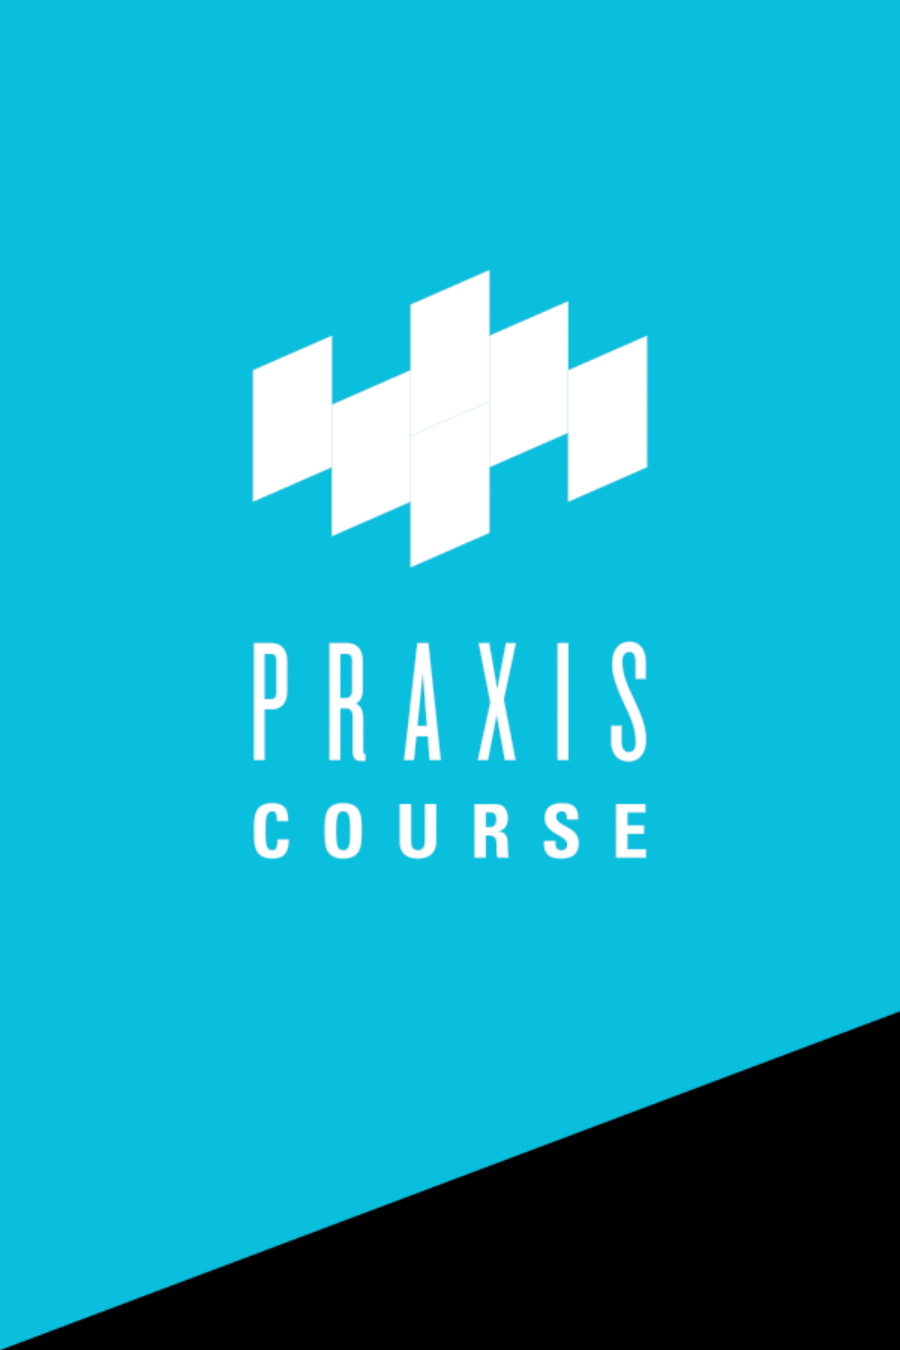 The Praxis Course